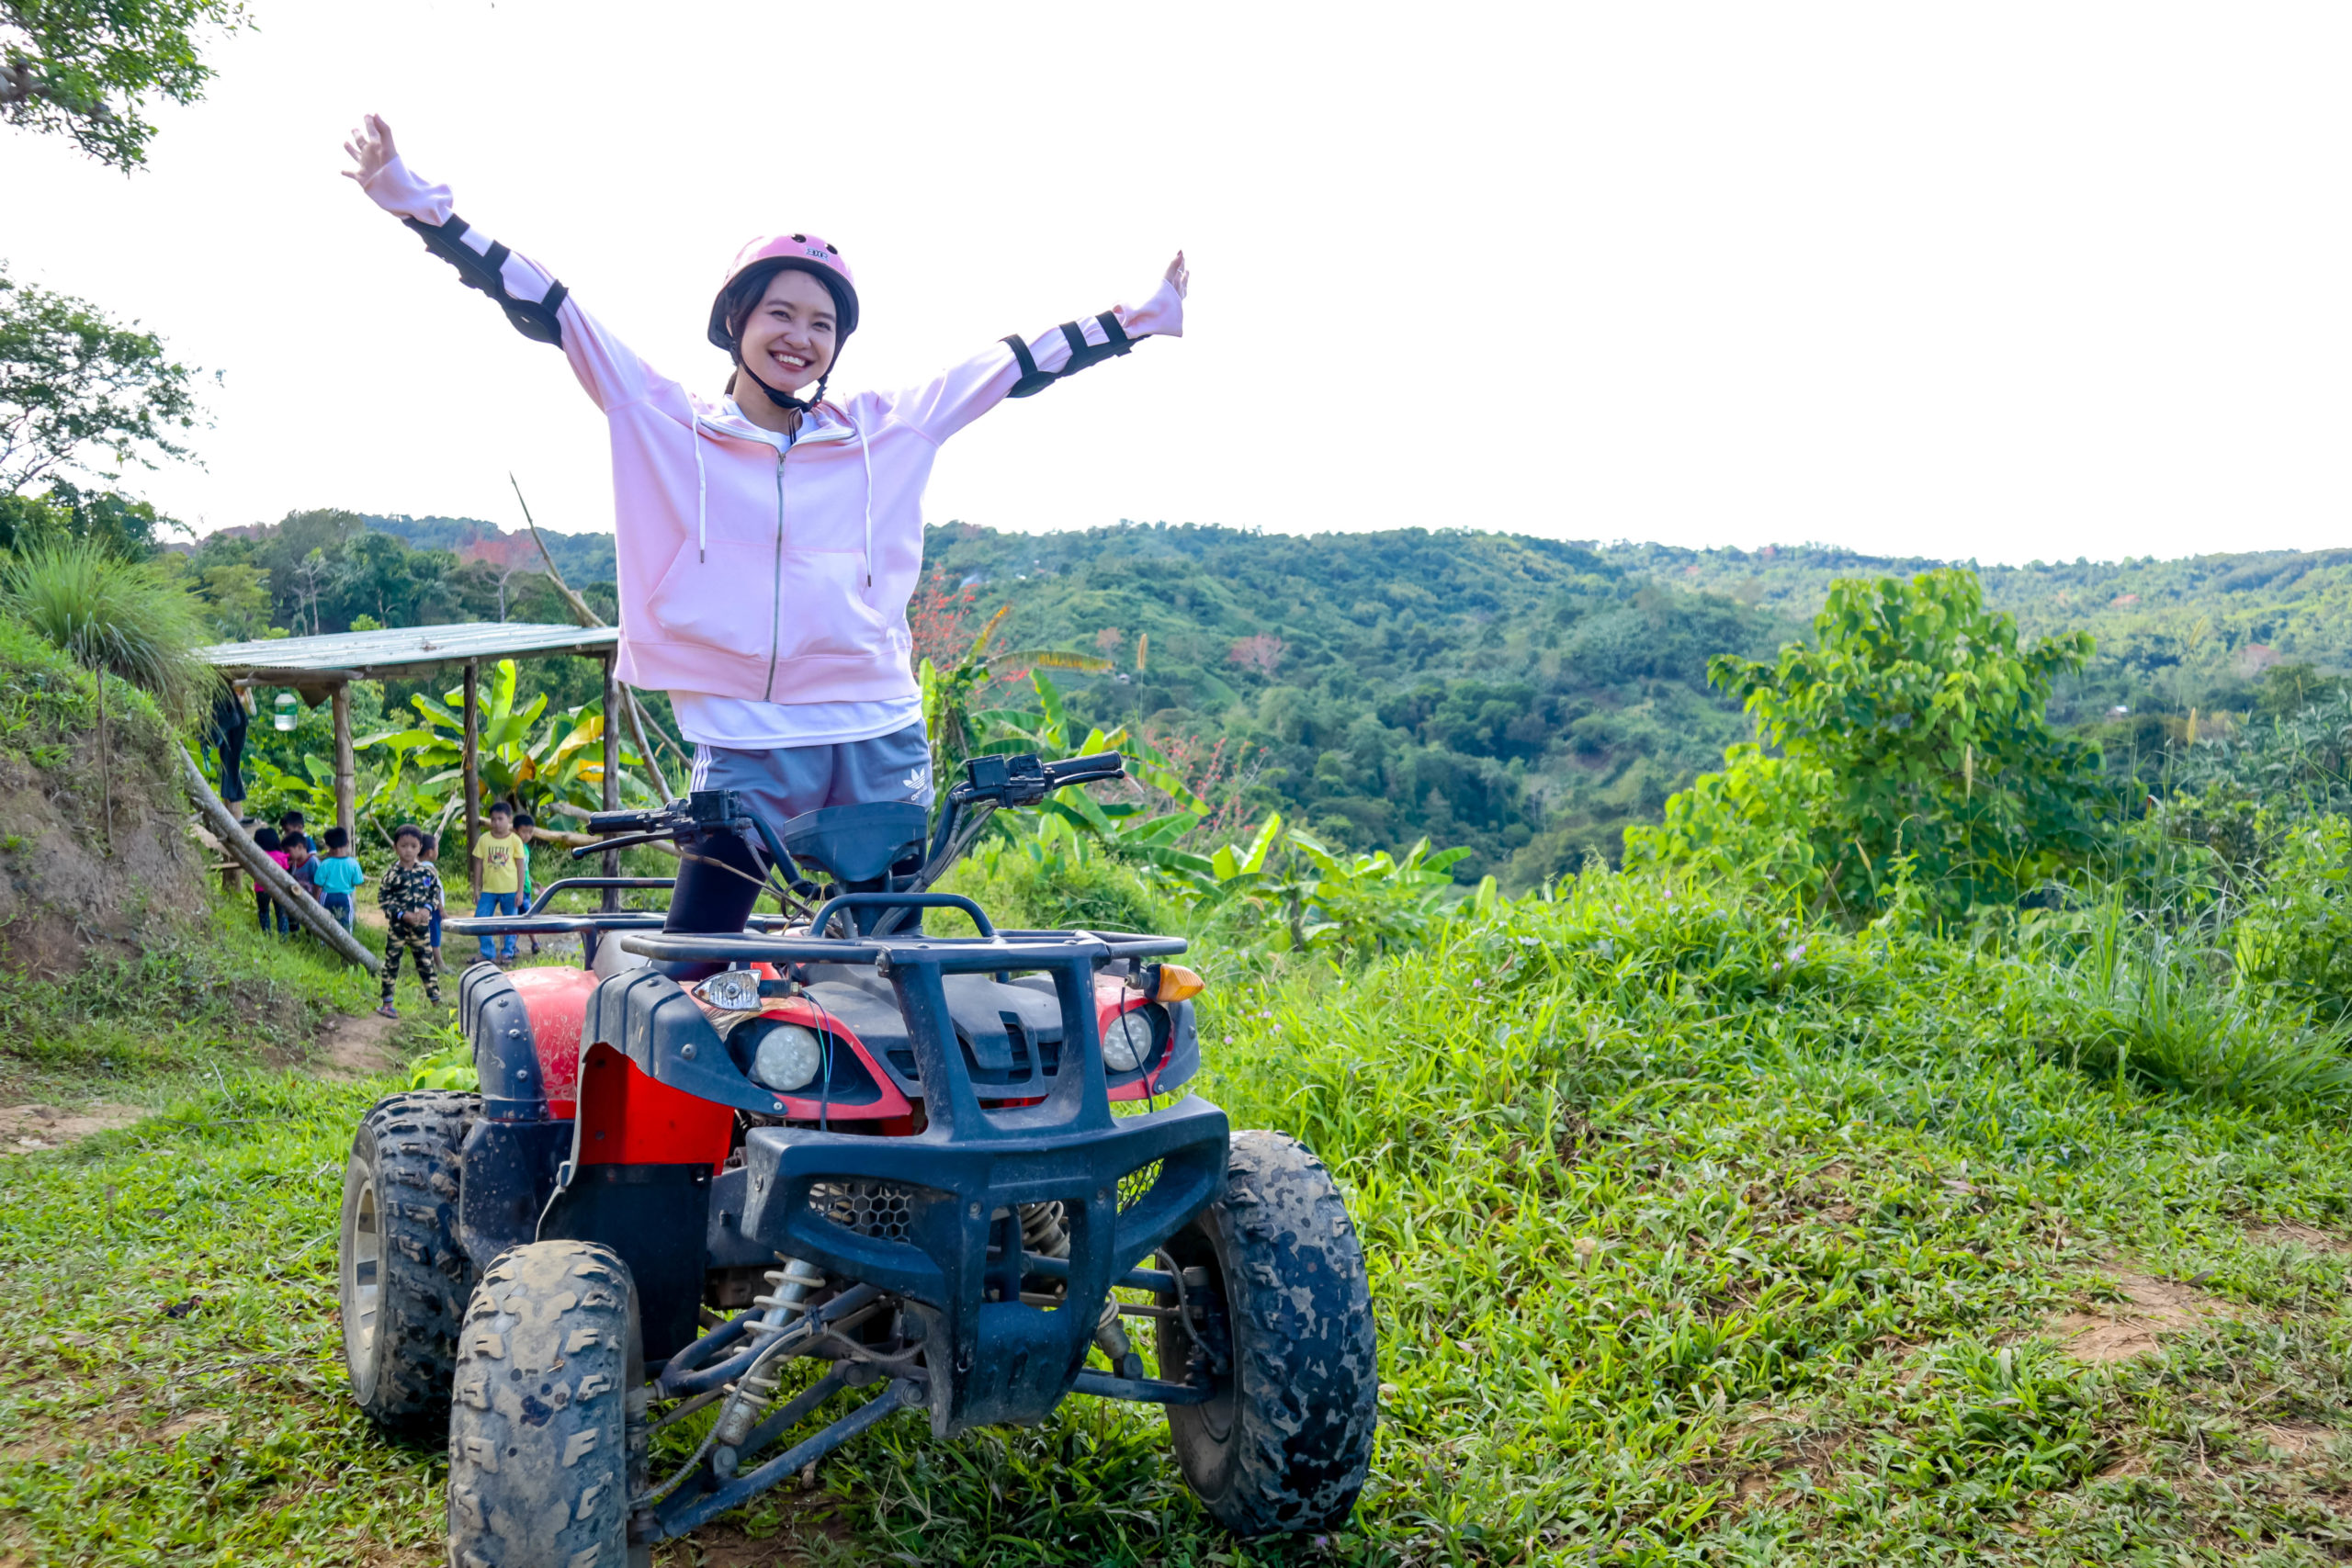 Get Closer to Sierra Madre with Mountain Quest ATV & Dirtbike Tours